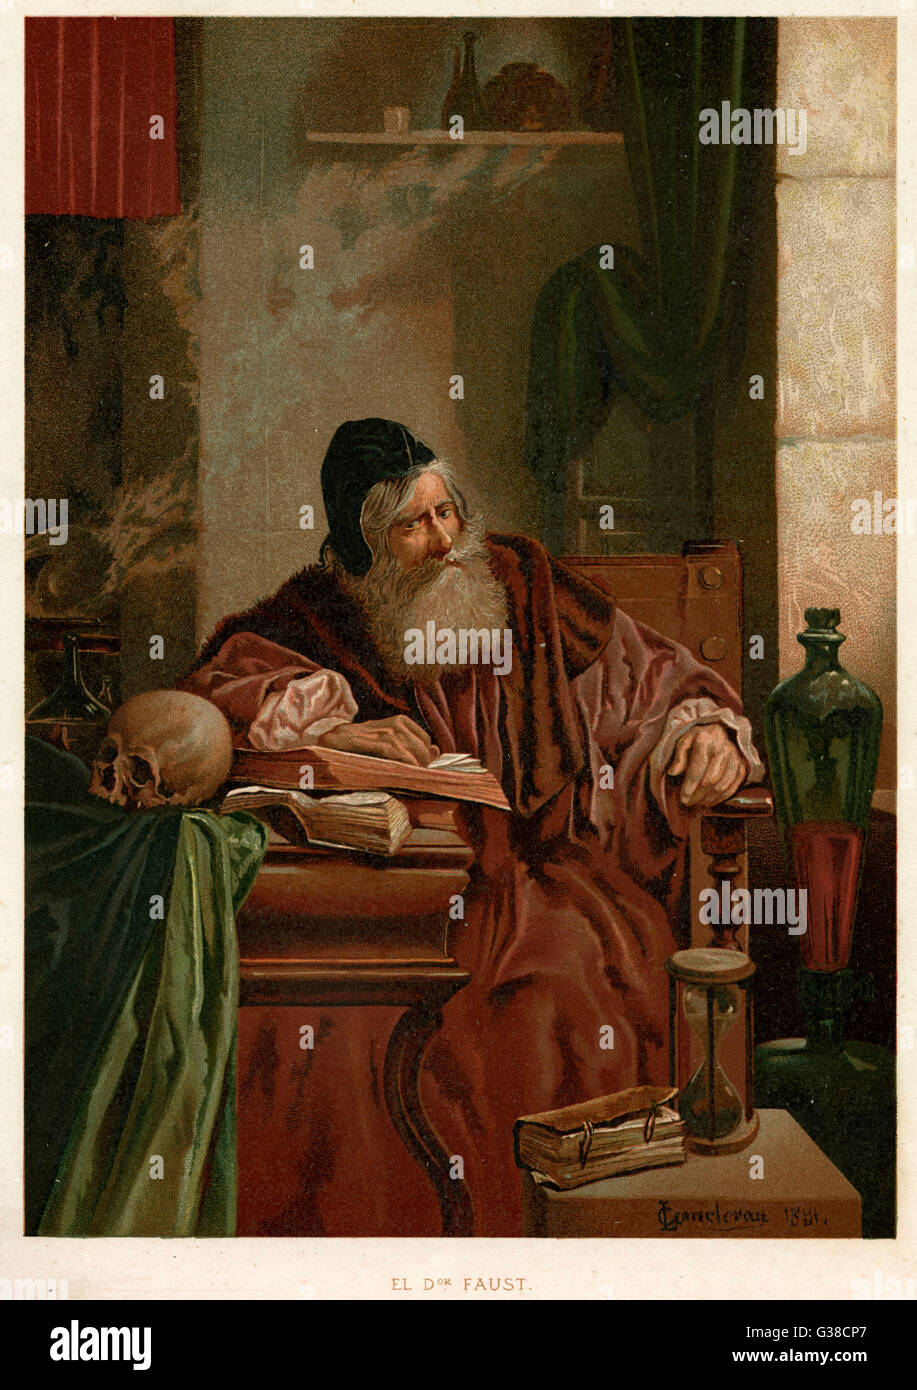 Faust at his studies muses on  the power of magic - Stock Image